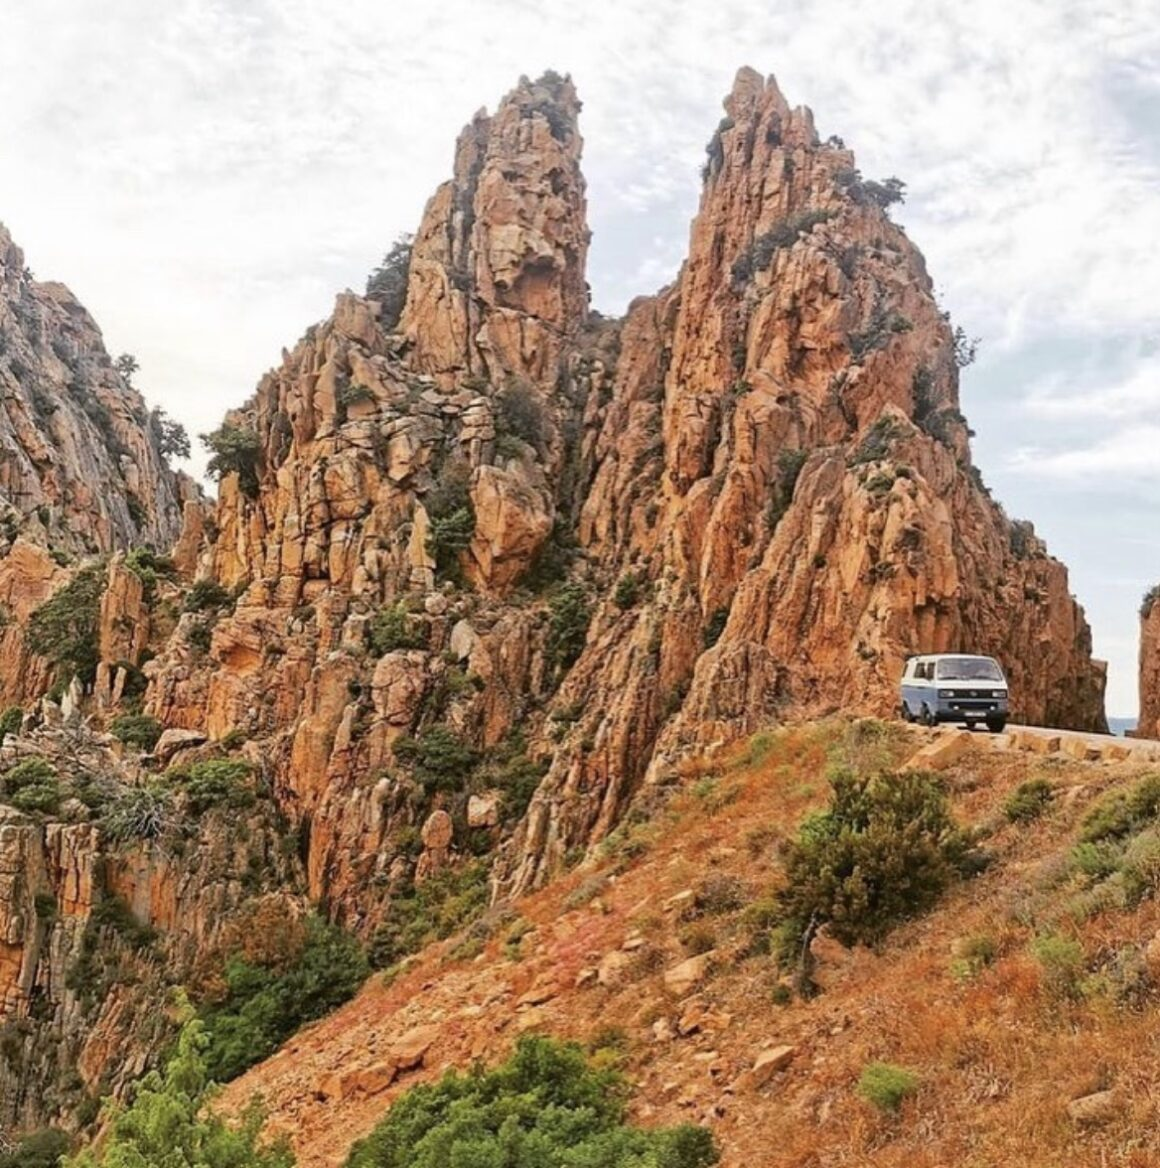 van life parking tips - camper parked by large rock structure